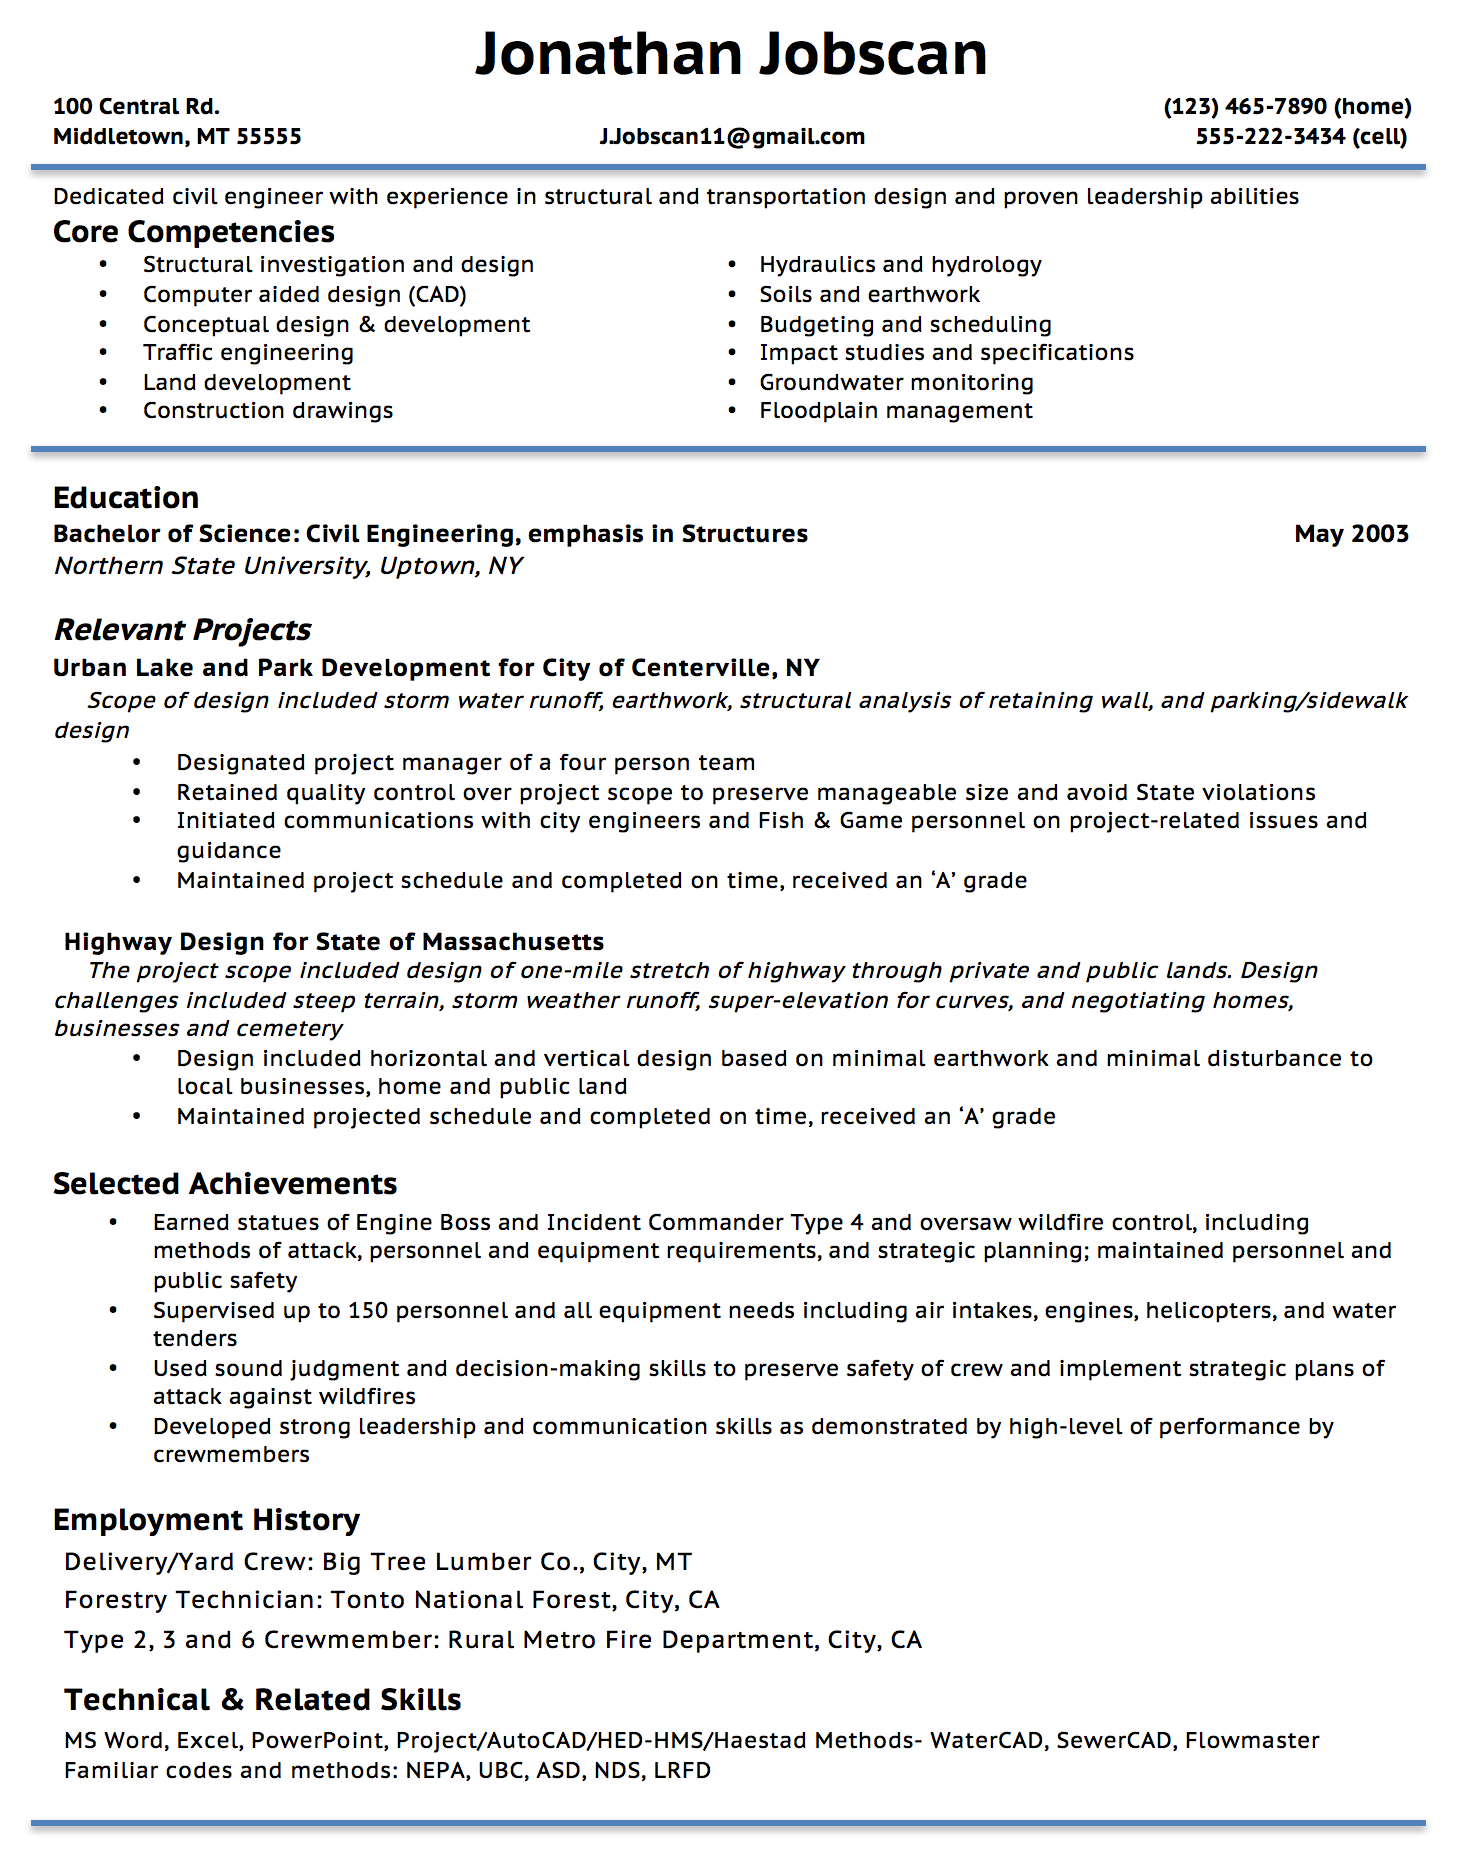 Opposenewapstandardsus  Stunning Resume Writing Guide  Jobscan With Magnificent Example Of A Functional Resume Format With Attractive Help Building A Resume Also Sample Computer Science Resume In Addition Design Engineer Resume And Call Center Job Description Resume As Well As Payroll Clerk Resume Additionally What Is Objective On A Resume From Jobscanco With Opposenewapstandardsus  Magnificent Resume Writing Guide  Jobscan With Attractive Example Of A Functional Resume Format And Stunning Help Building A Resume Also Sample Computer Science Resume In Addition Design Engineer Resume From Jobscanco